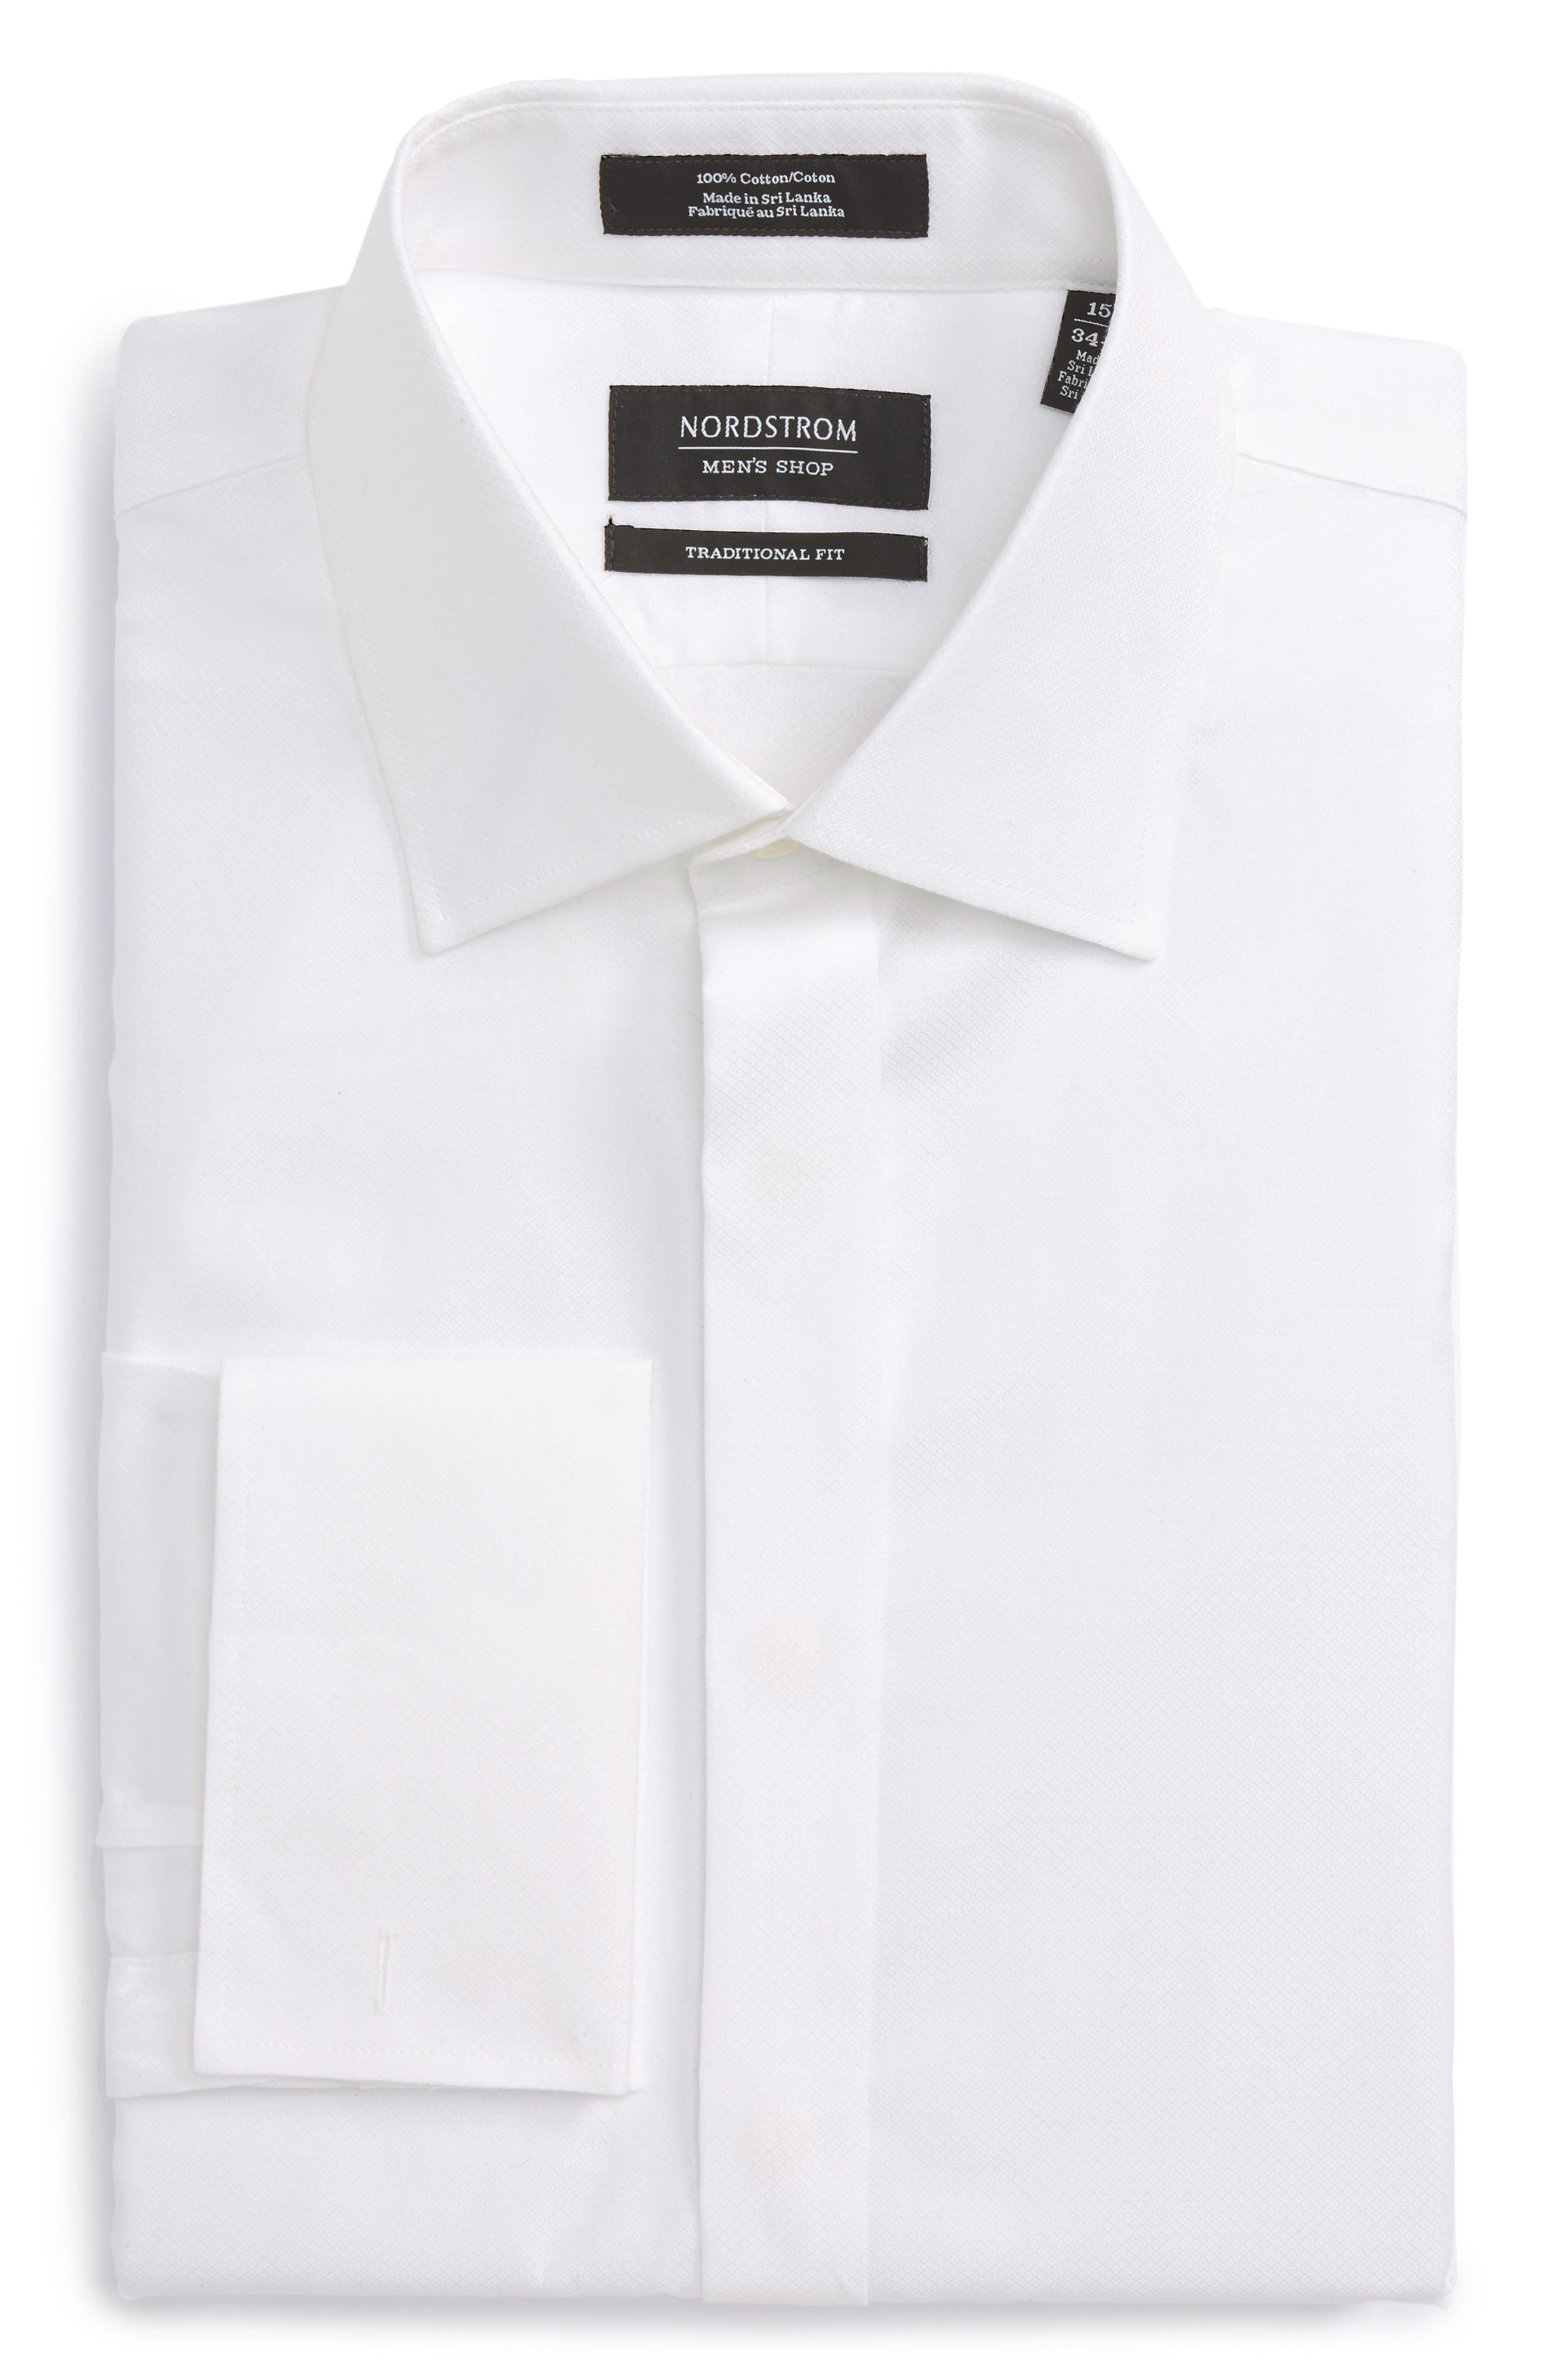 Nordstrom Traditional Fit Tuxedo Shirt